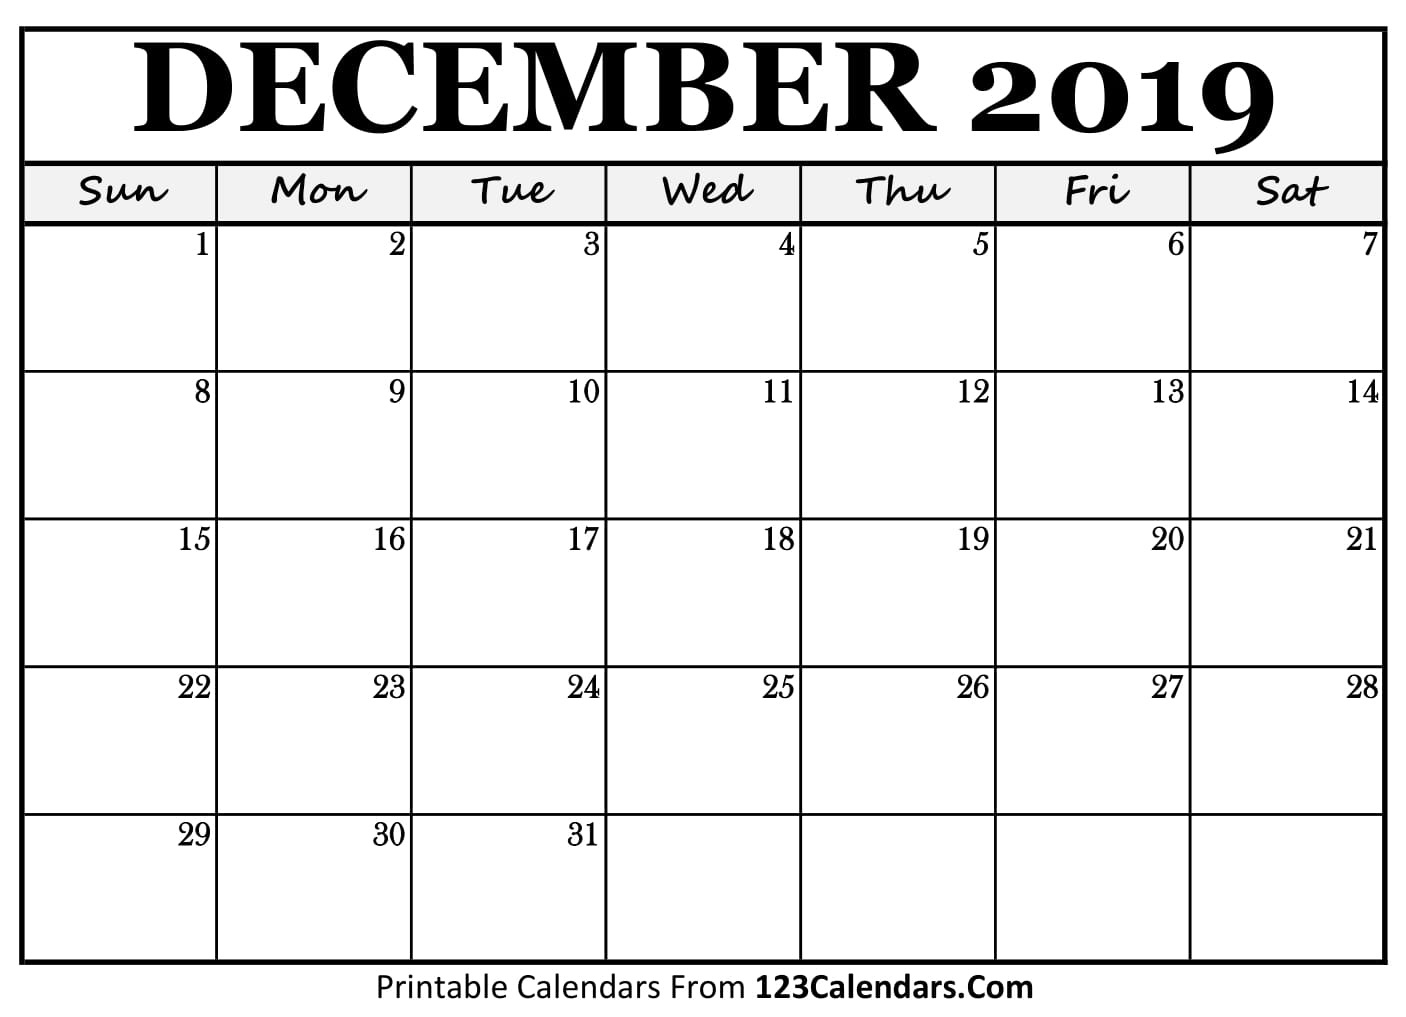 image about Calendars Printable titled December 2019 Printable Calendar